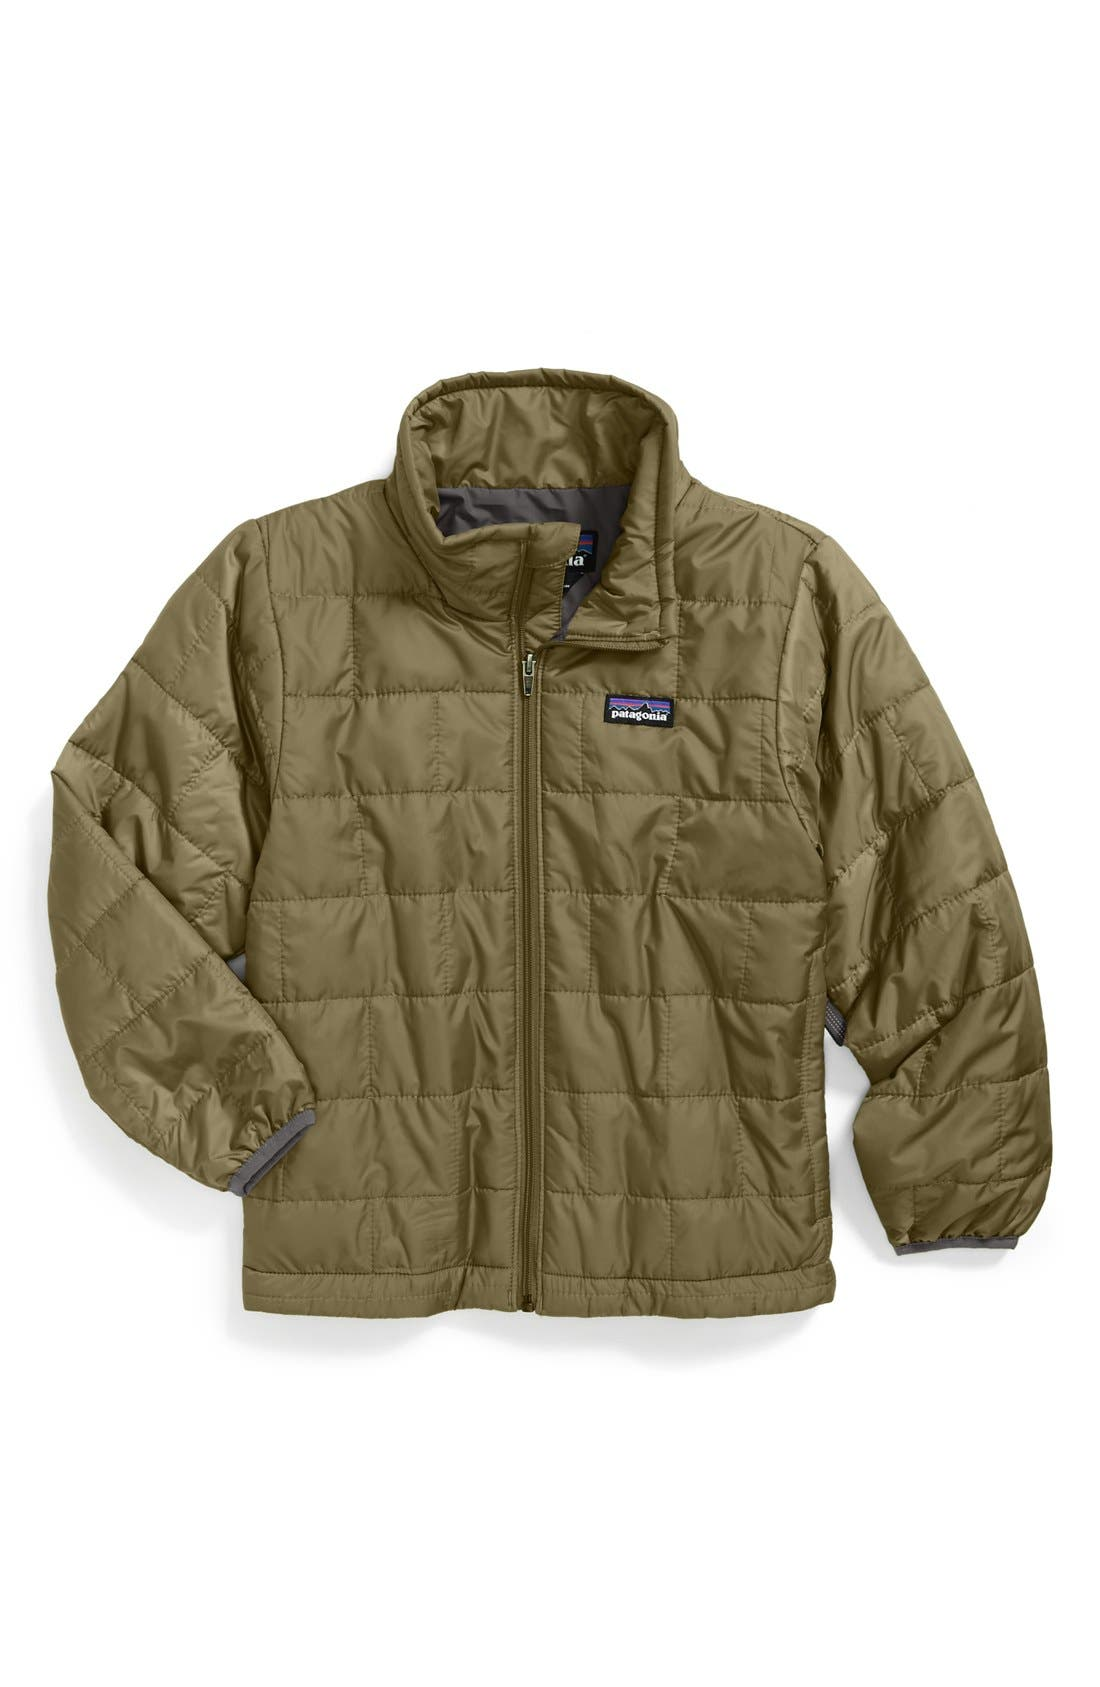 Main Image - Patagonia 'Nano Puff' Wind Resistant Water Resistant Jacket (Little Boys & Big Boys)